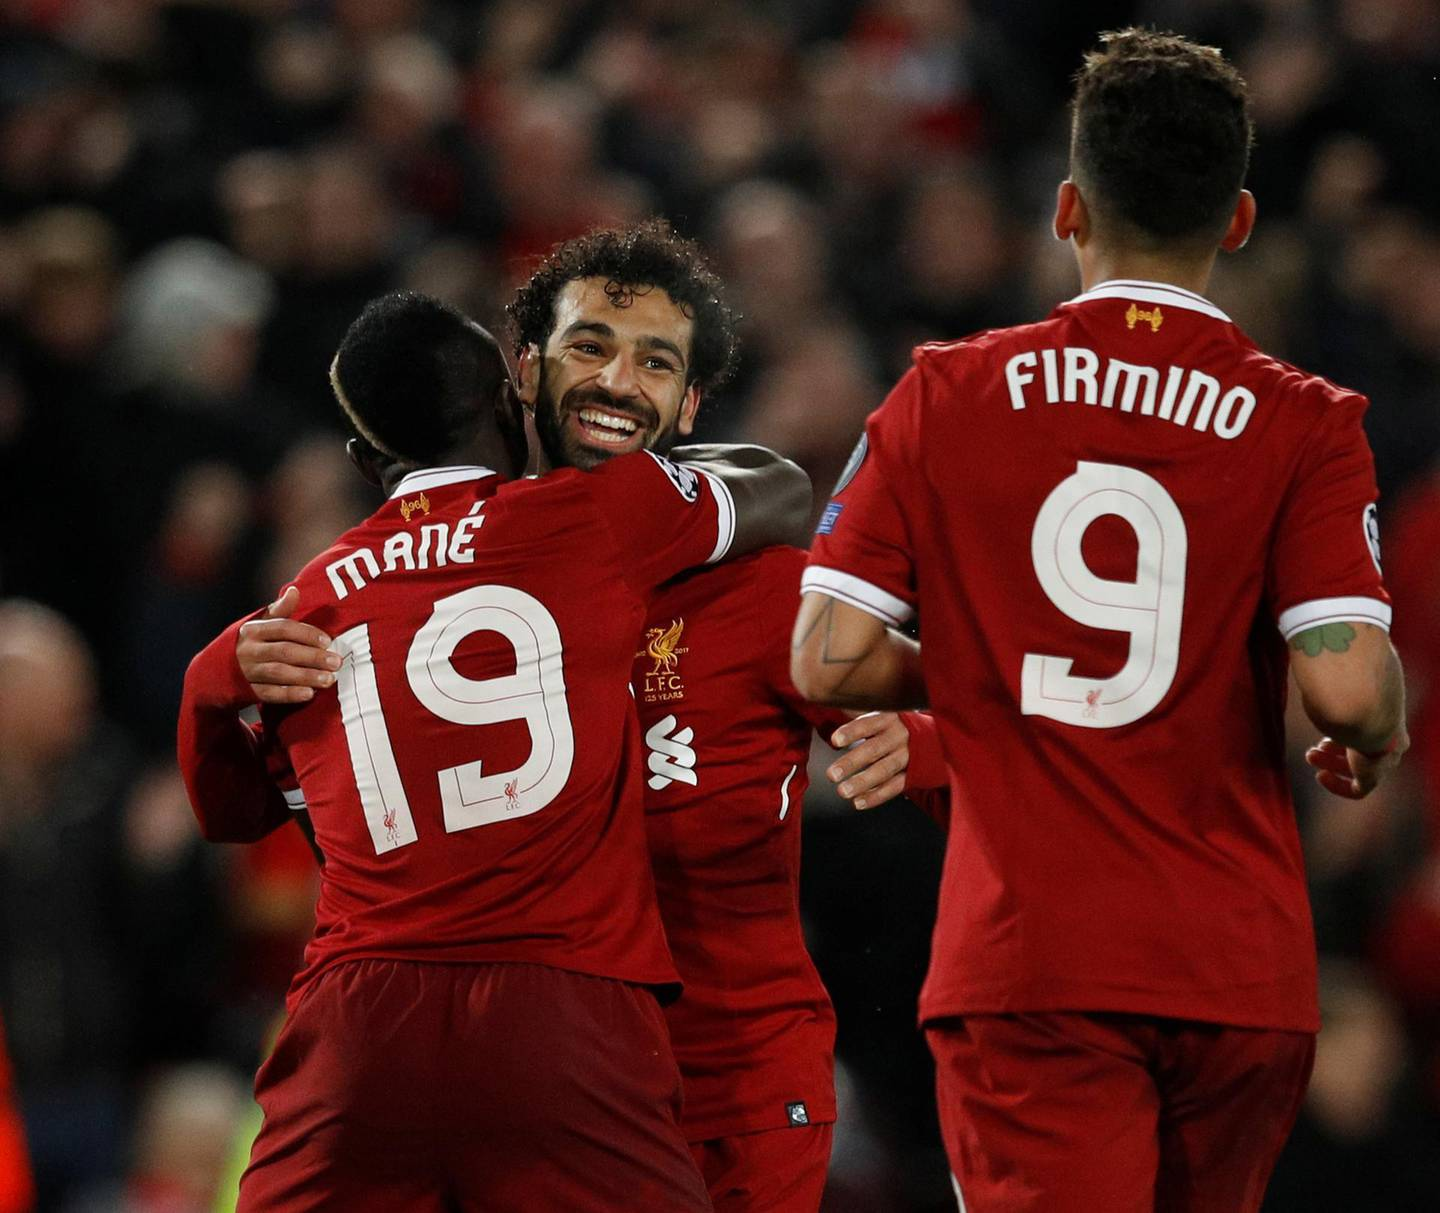 Soccer Football - Champions League Semi Final First Leg - Liverpool vs AS Roma - Anfield, Liverpool, Britain - April 24, 2018   Liverpool's Sadio Mane celebrates scoring their third goal with Mohamed Salah and Roberto Firmino    REUTERS/Phil Noble - RC1E9F88F4C0